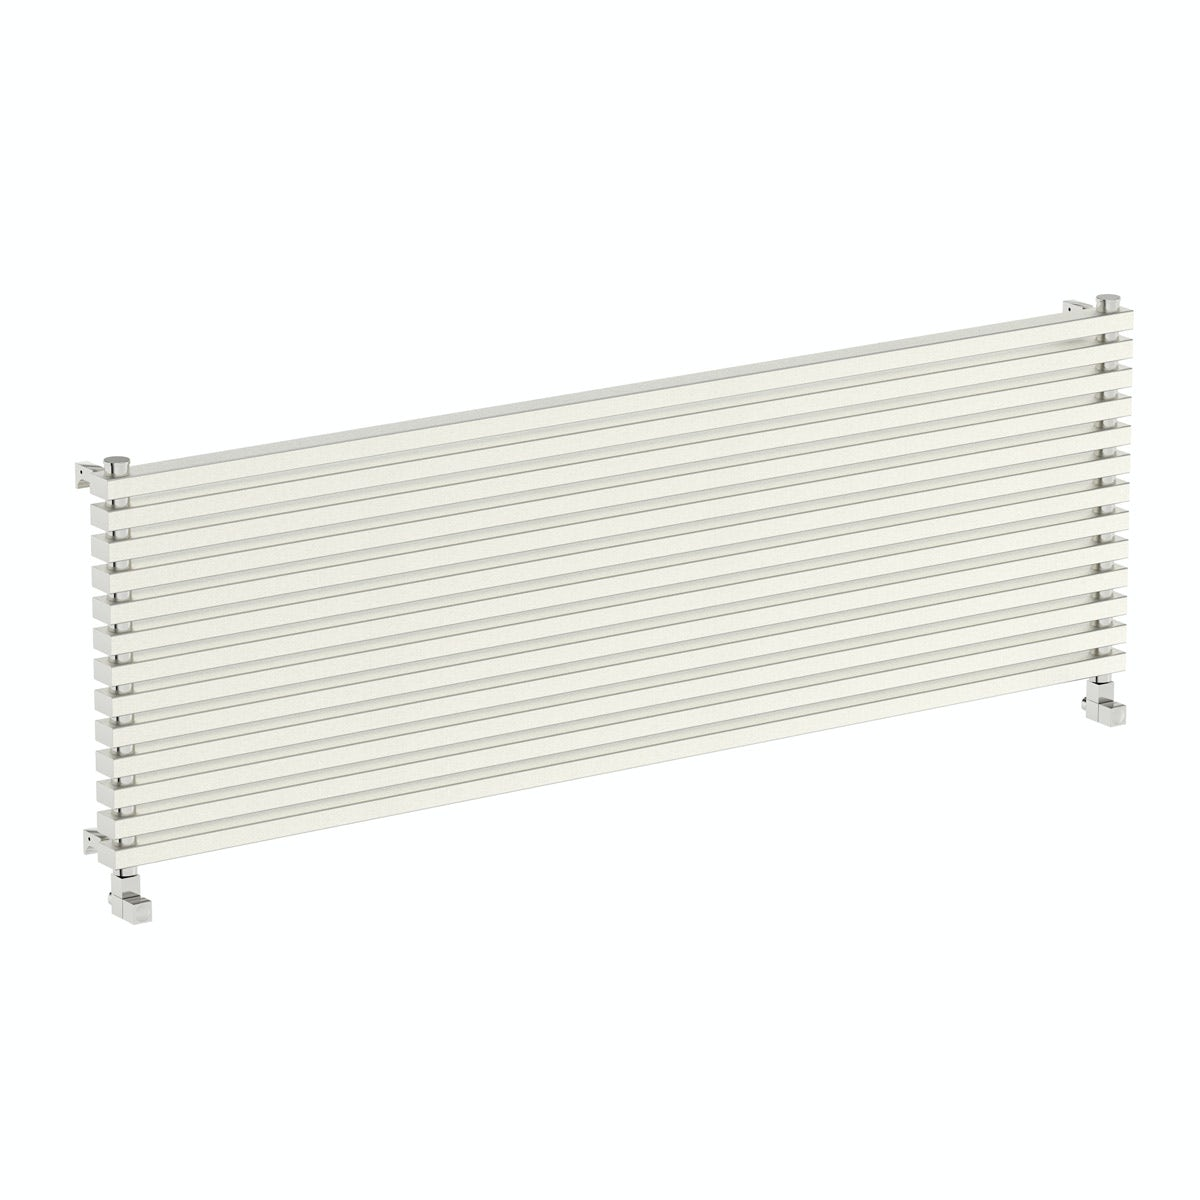 Mode Cadence horizontal radiator 600 x 1800